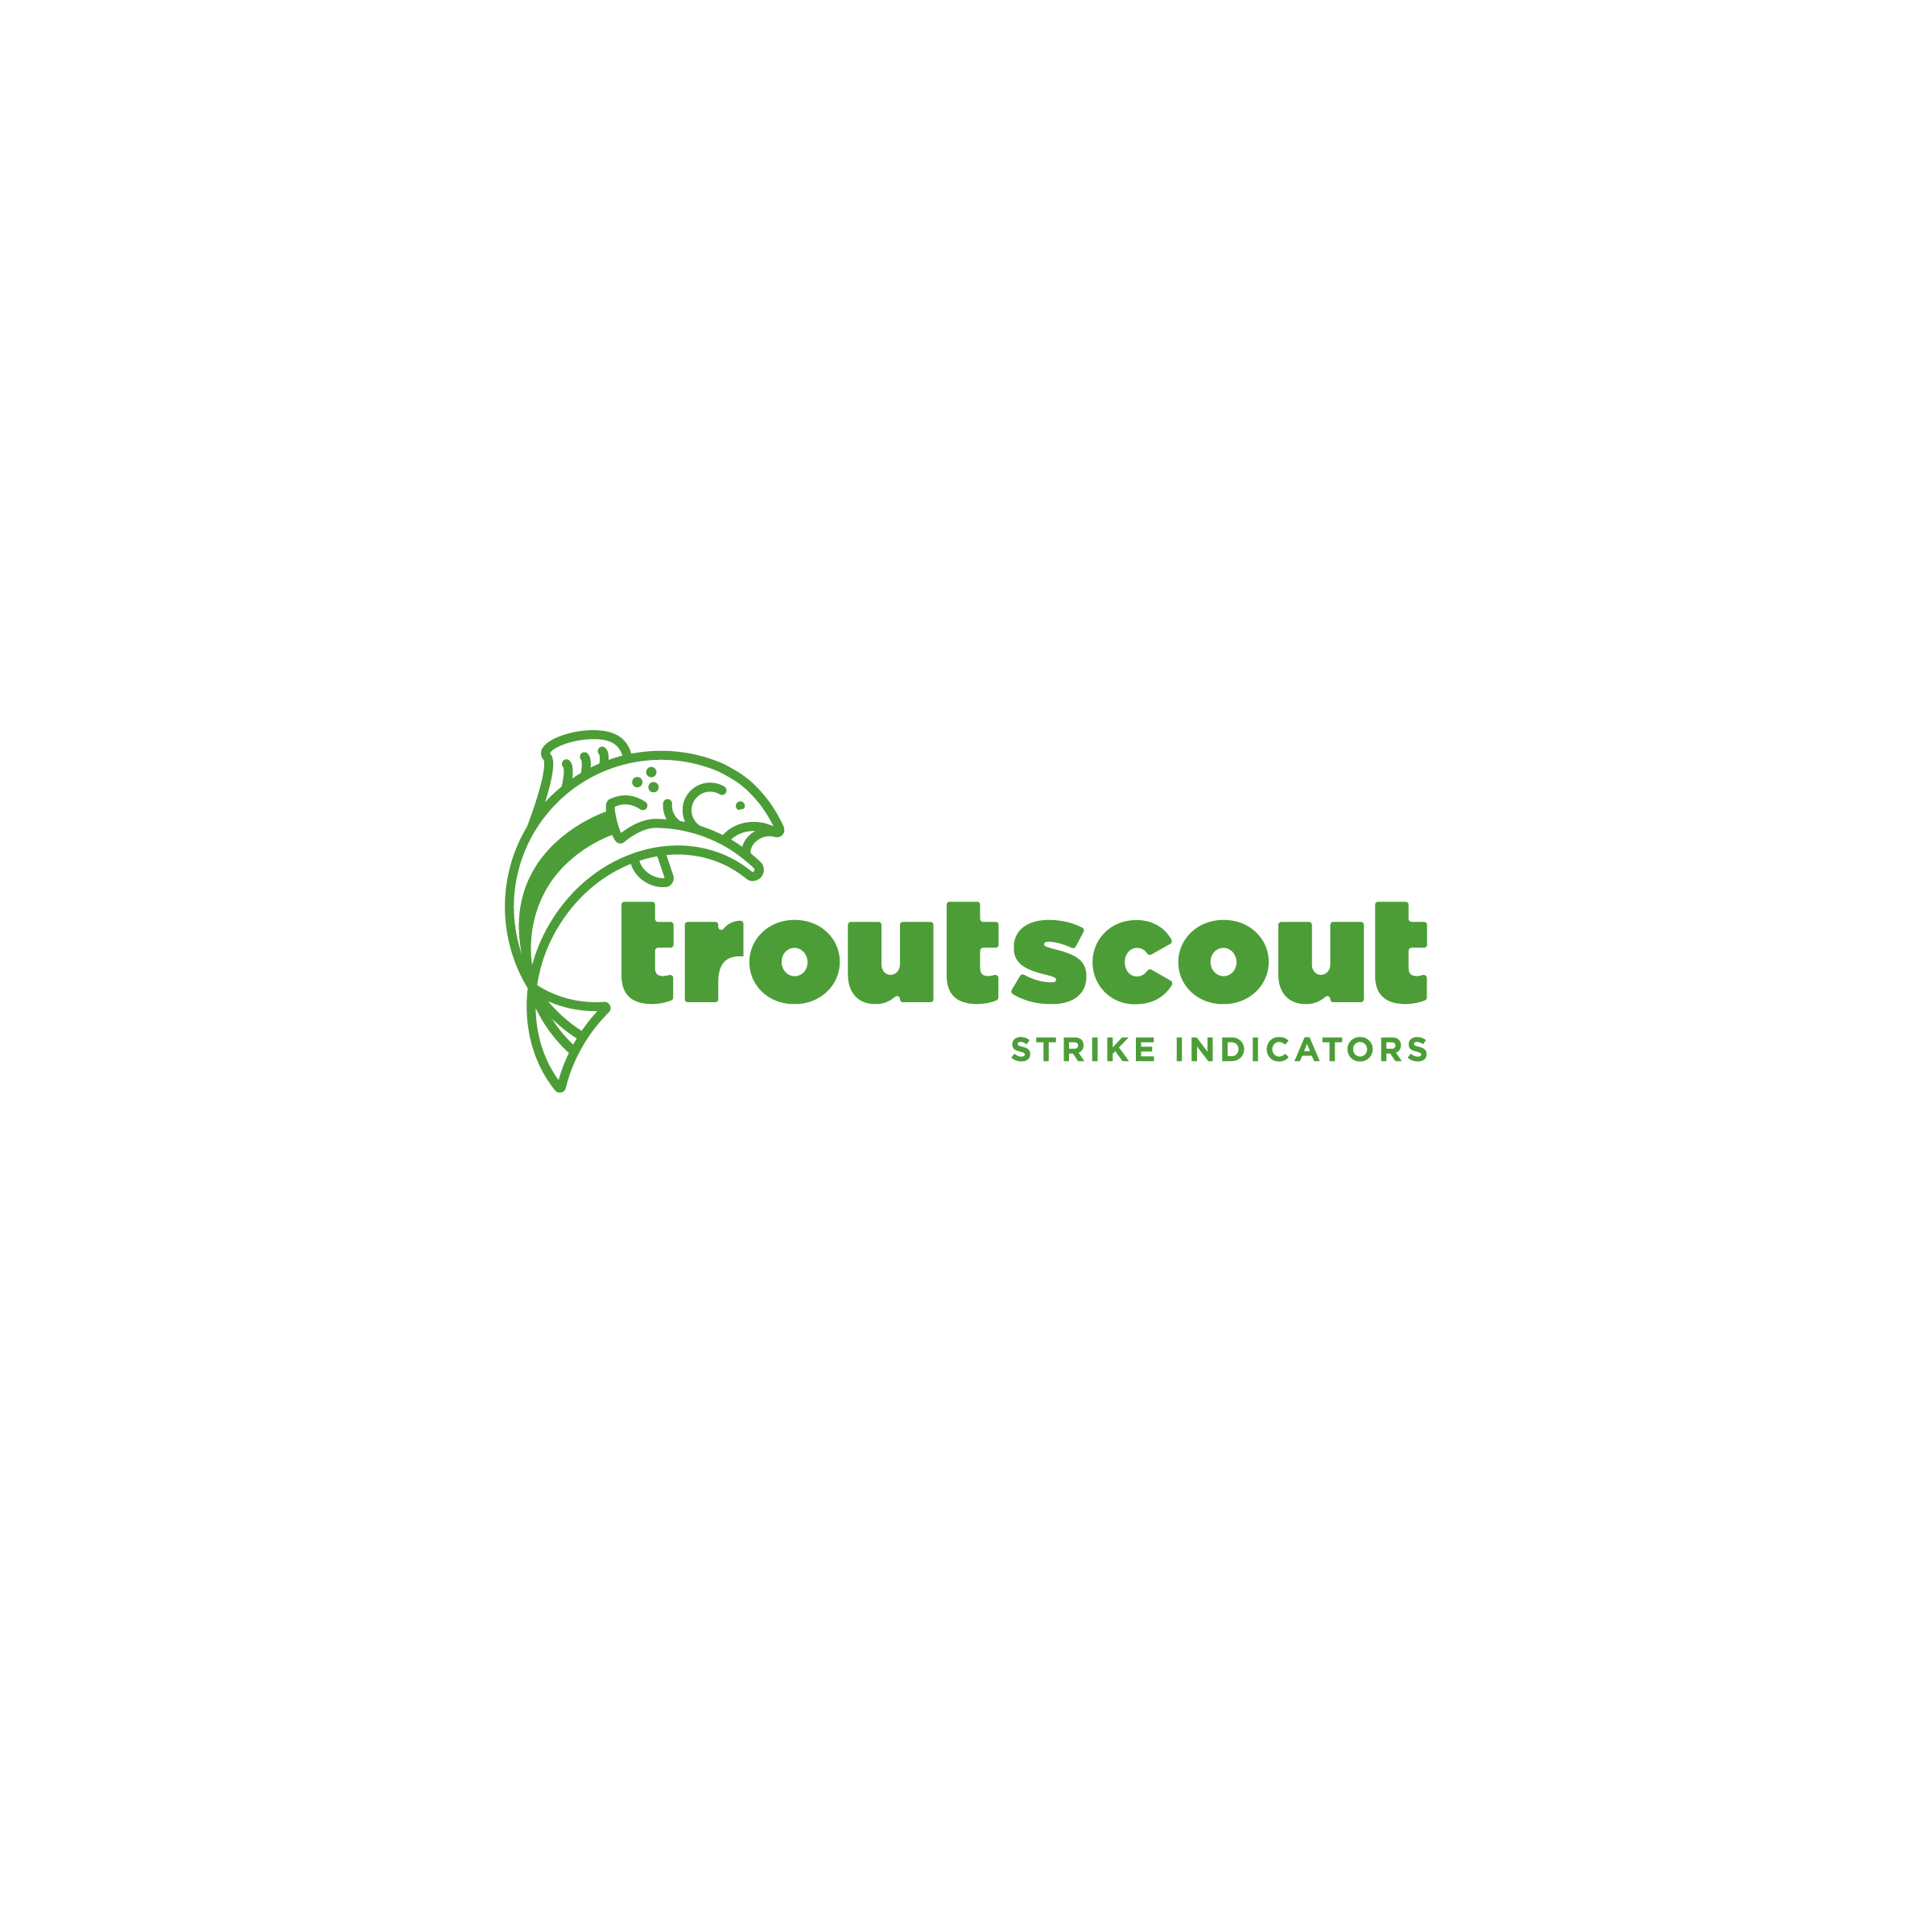 TroutScout_Green_Hrzt.jpg